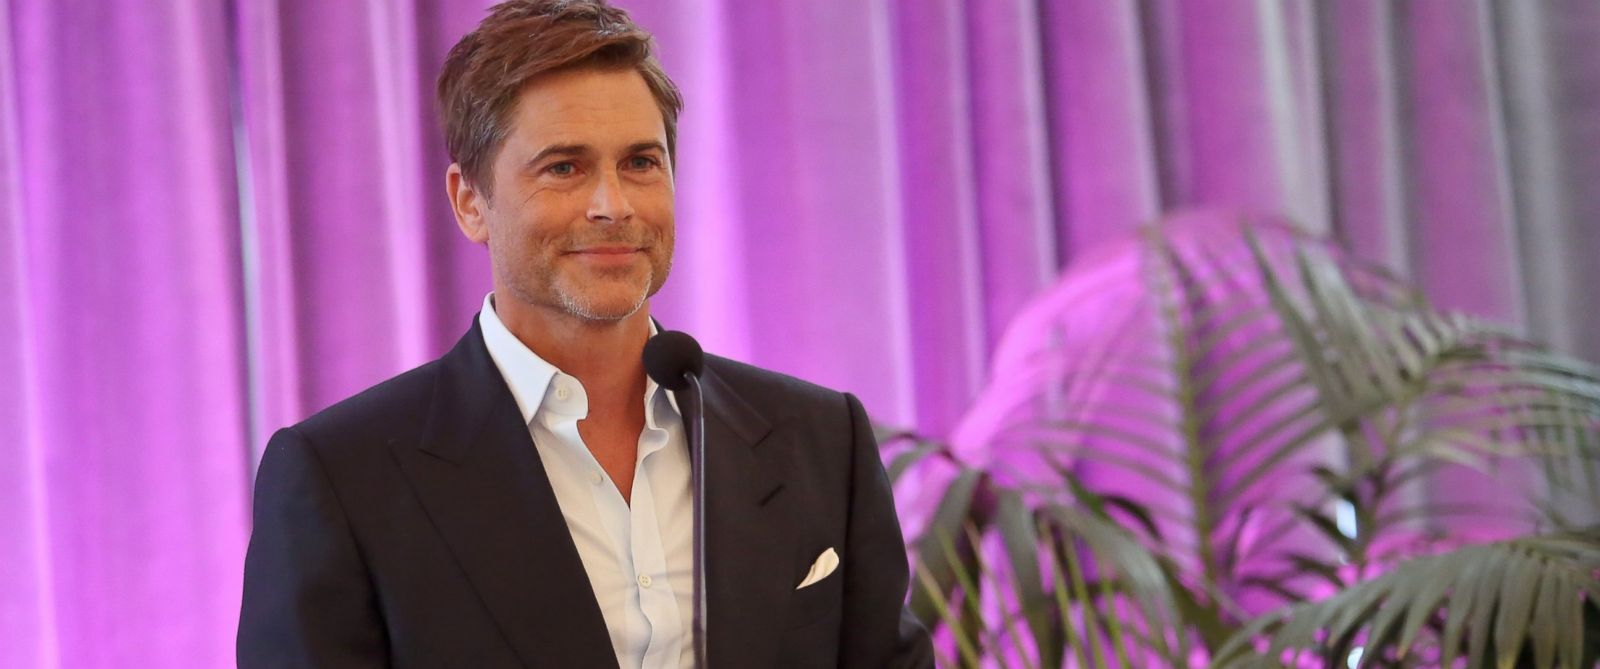 PHOTO: Actor Rob Lowe attends the Get In Touch Foundations 2014 Pretty In Pink Luncheon and Women of Strength Awards at the Casa del Mar Hotel, March 16, 2014 in Santa Monica, Calif.